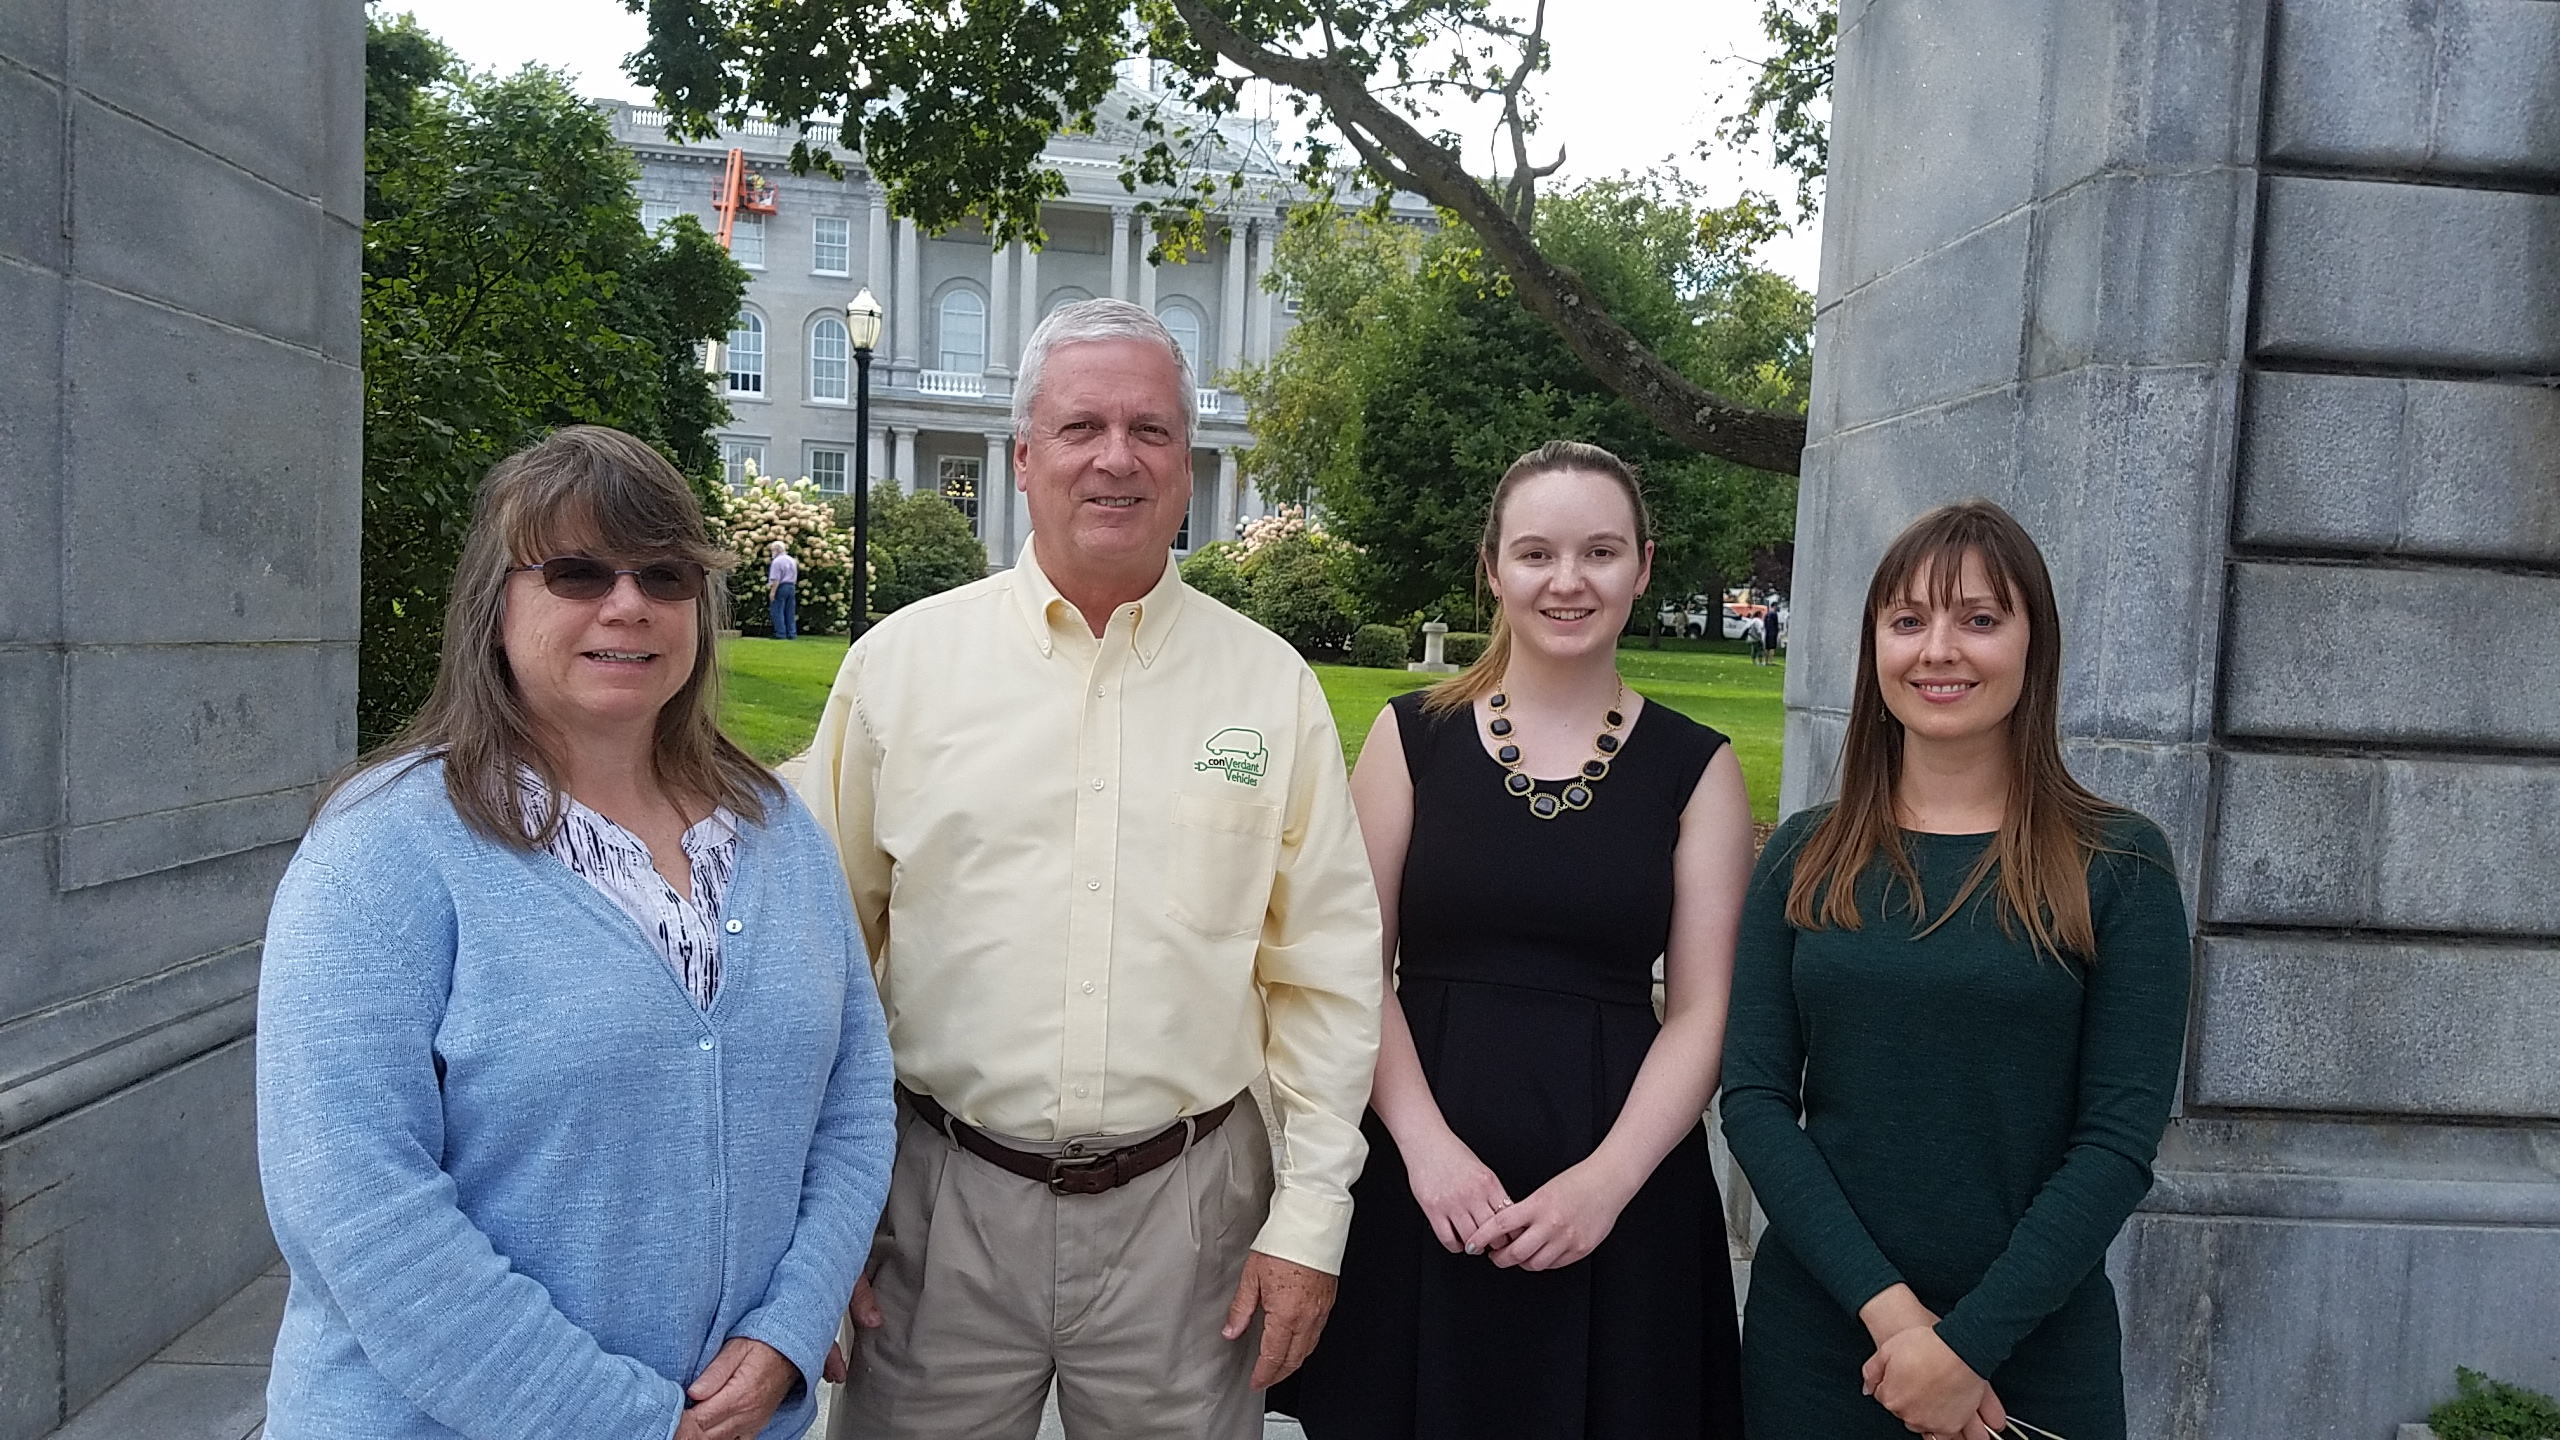 Drive Electric NH Founders: Cathy Corkery of the NH Sierra Club, Randy Bryan of ConVerdant, Brianna Brand and Kate Epsen of NHSEA. Courtesy photo.